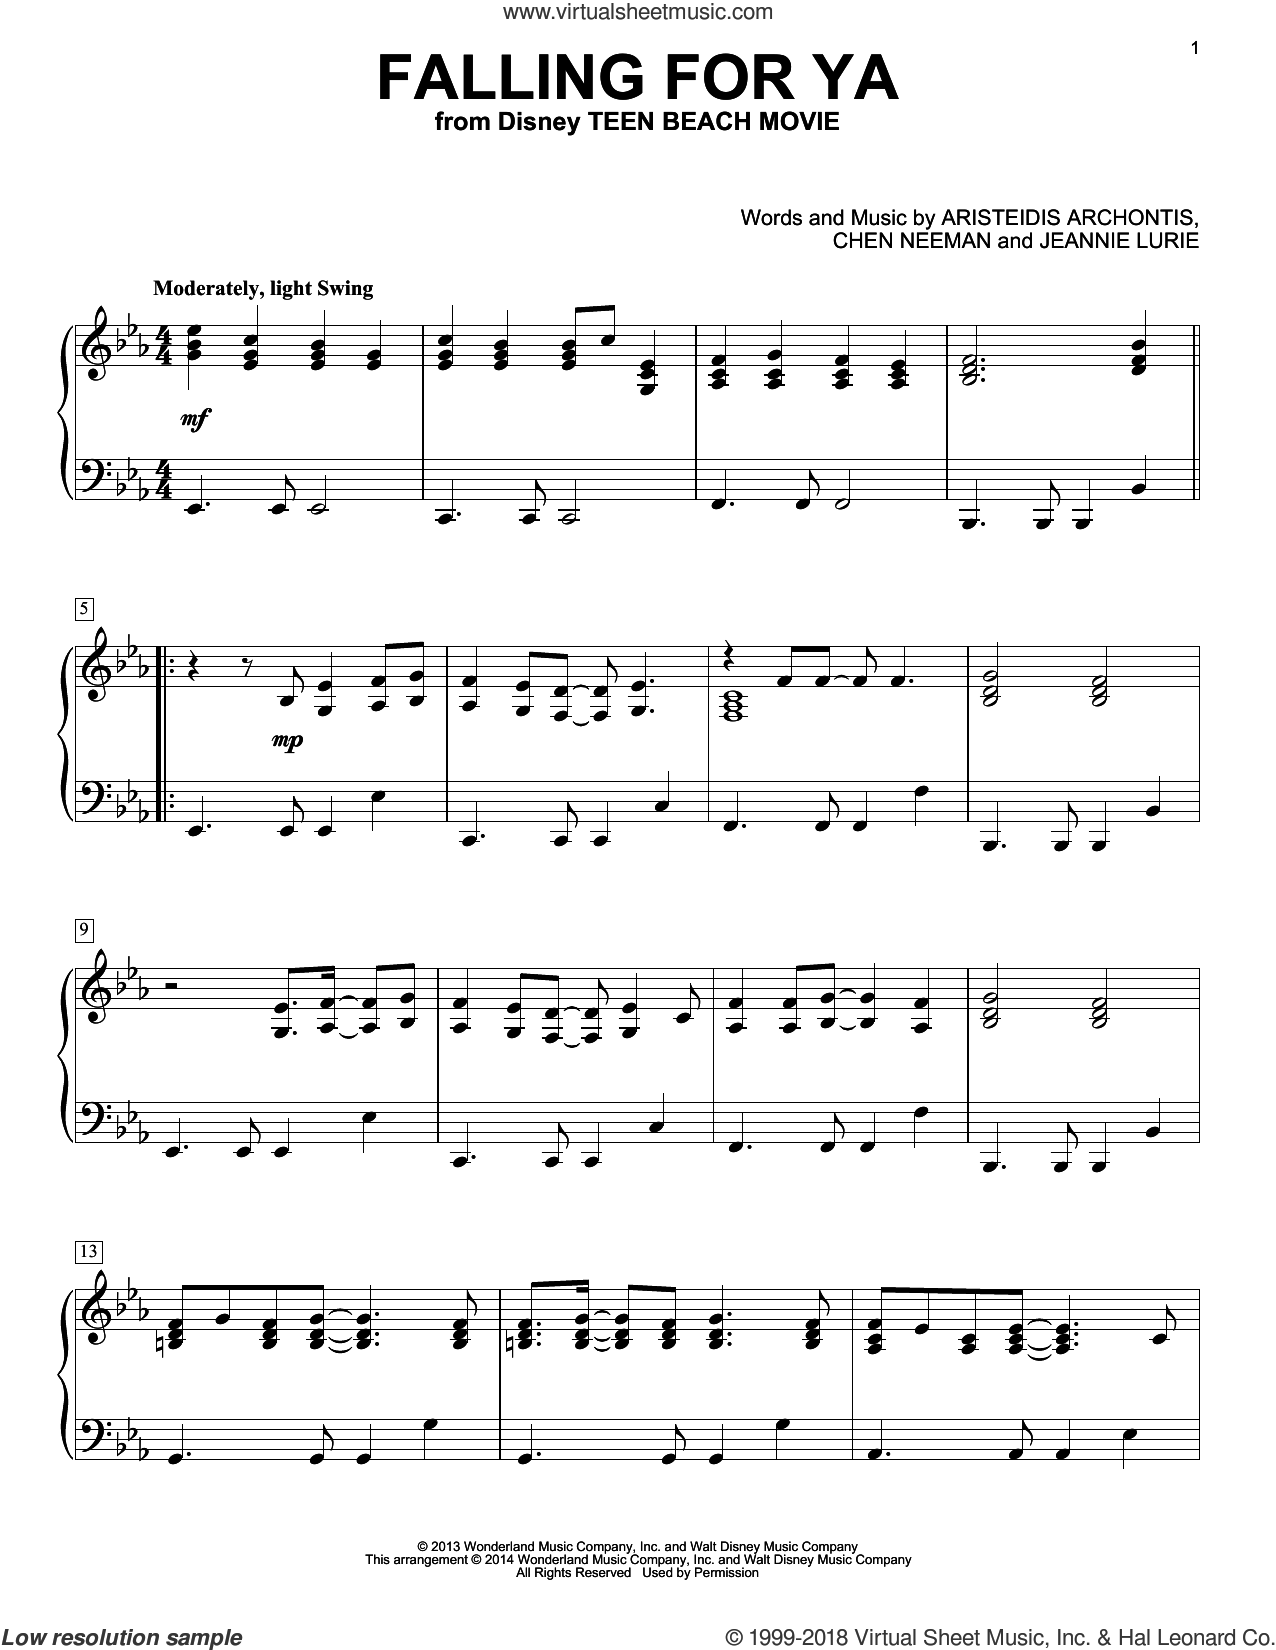 Falling For Ya sheet music for piano solo by Jeannie Lurie, Aristeidis Archontis and Chen Neeman, intermediate skill level